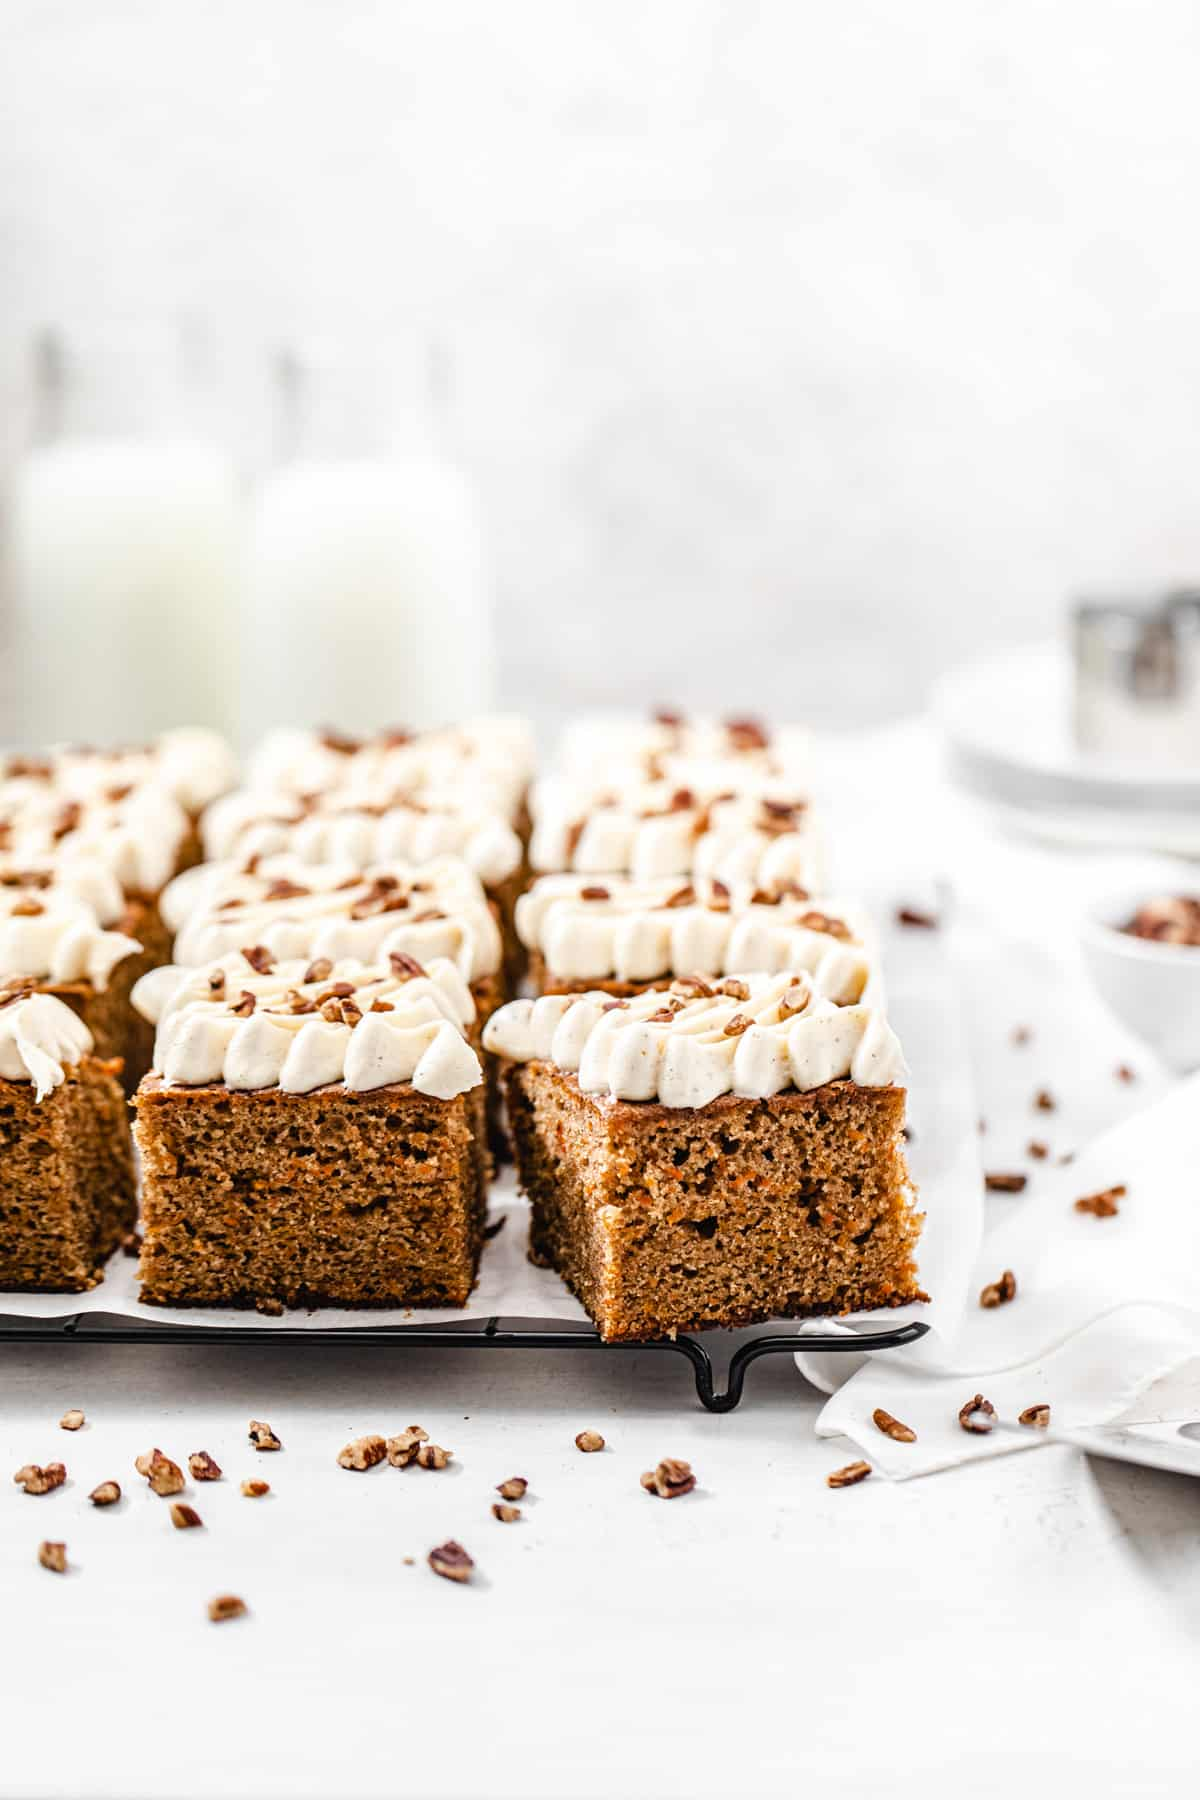 carrot cake slices on a parchment lined cooling rack